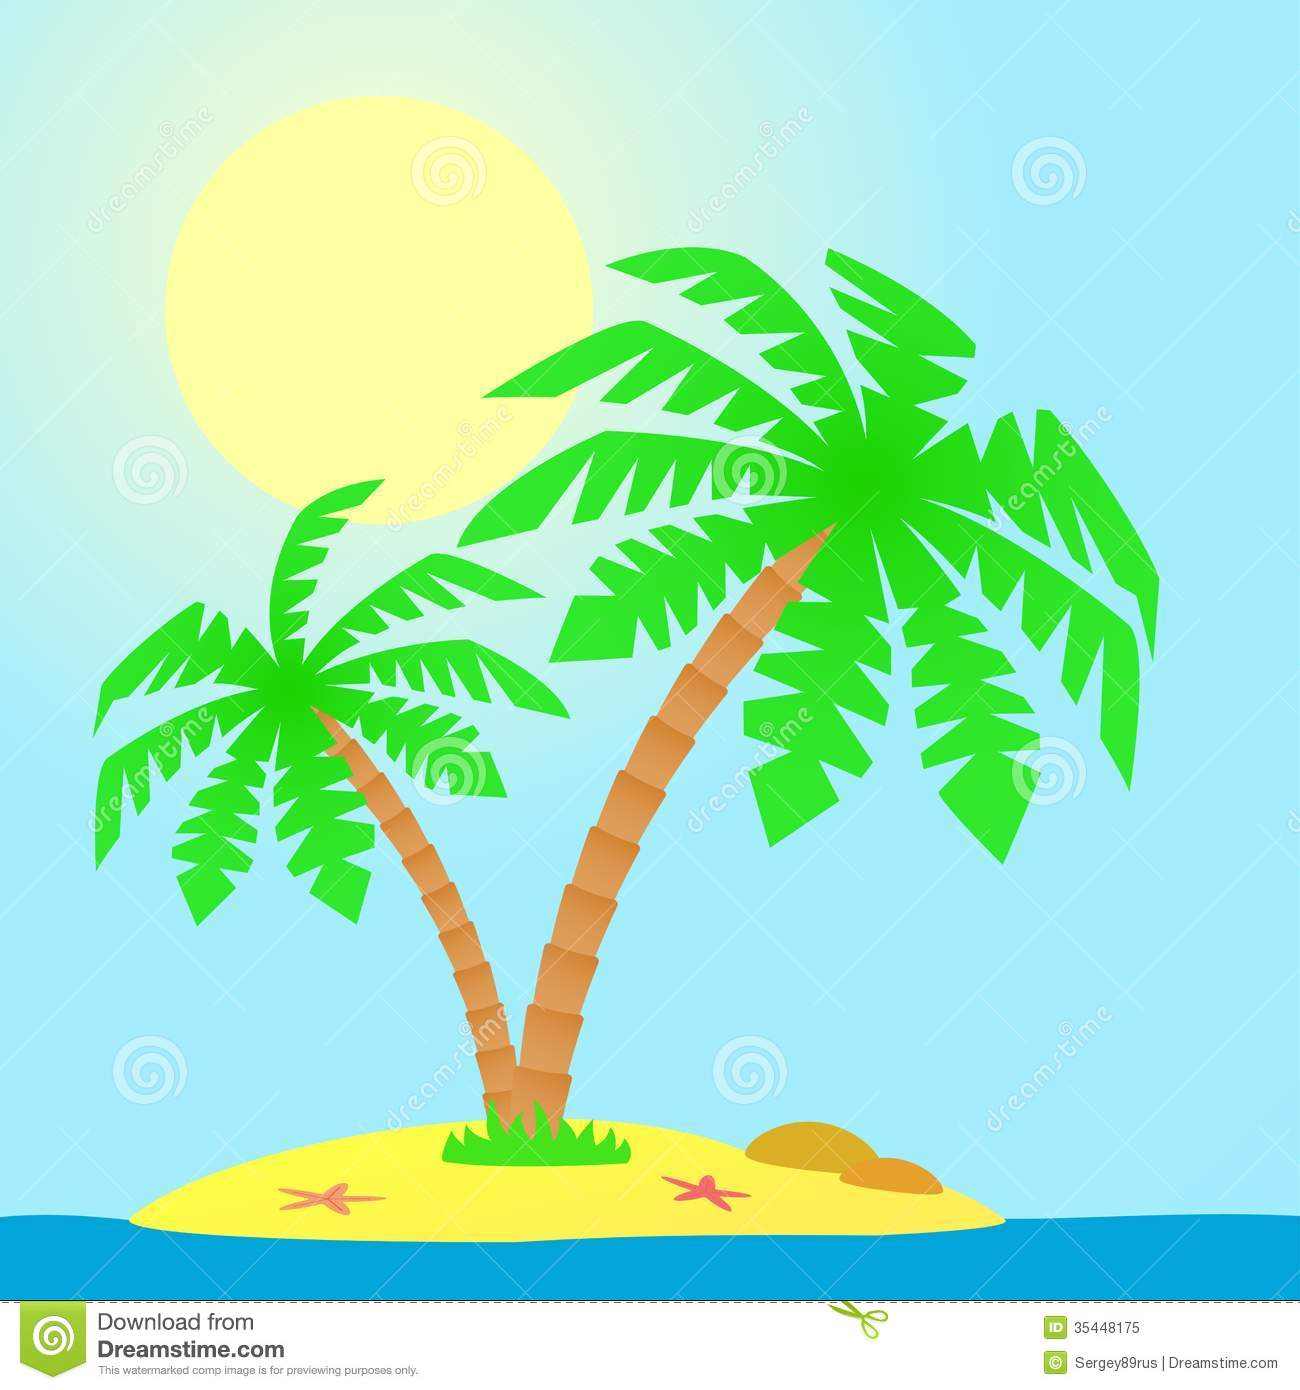 Palm Tree Island: Island With Palm Trees. Stock Vector. Illustration Of Leaf